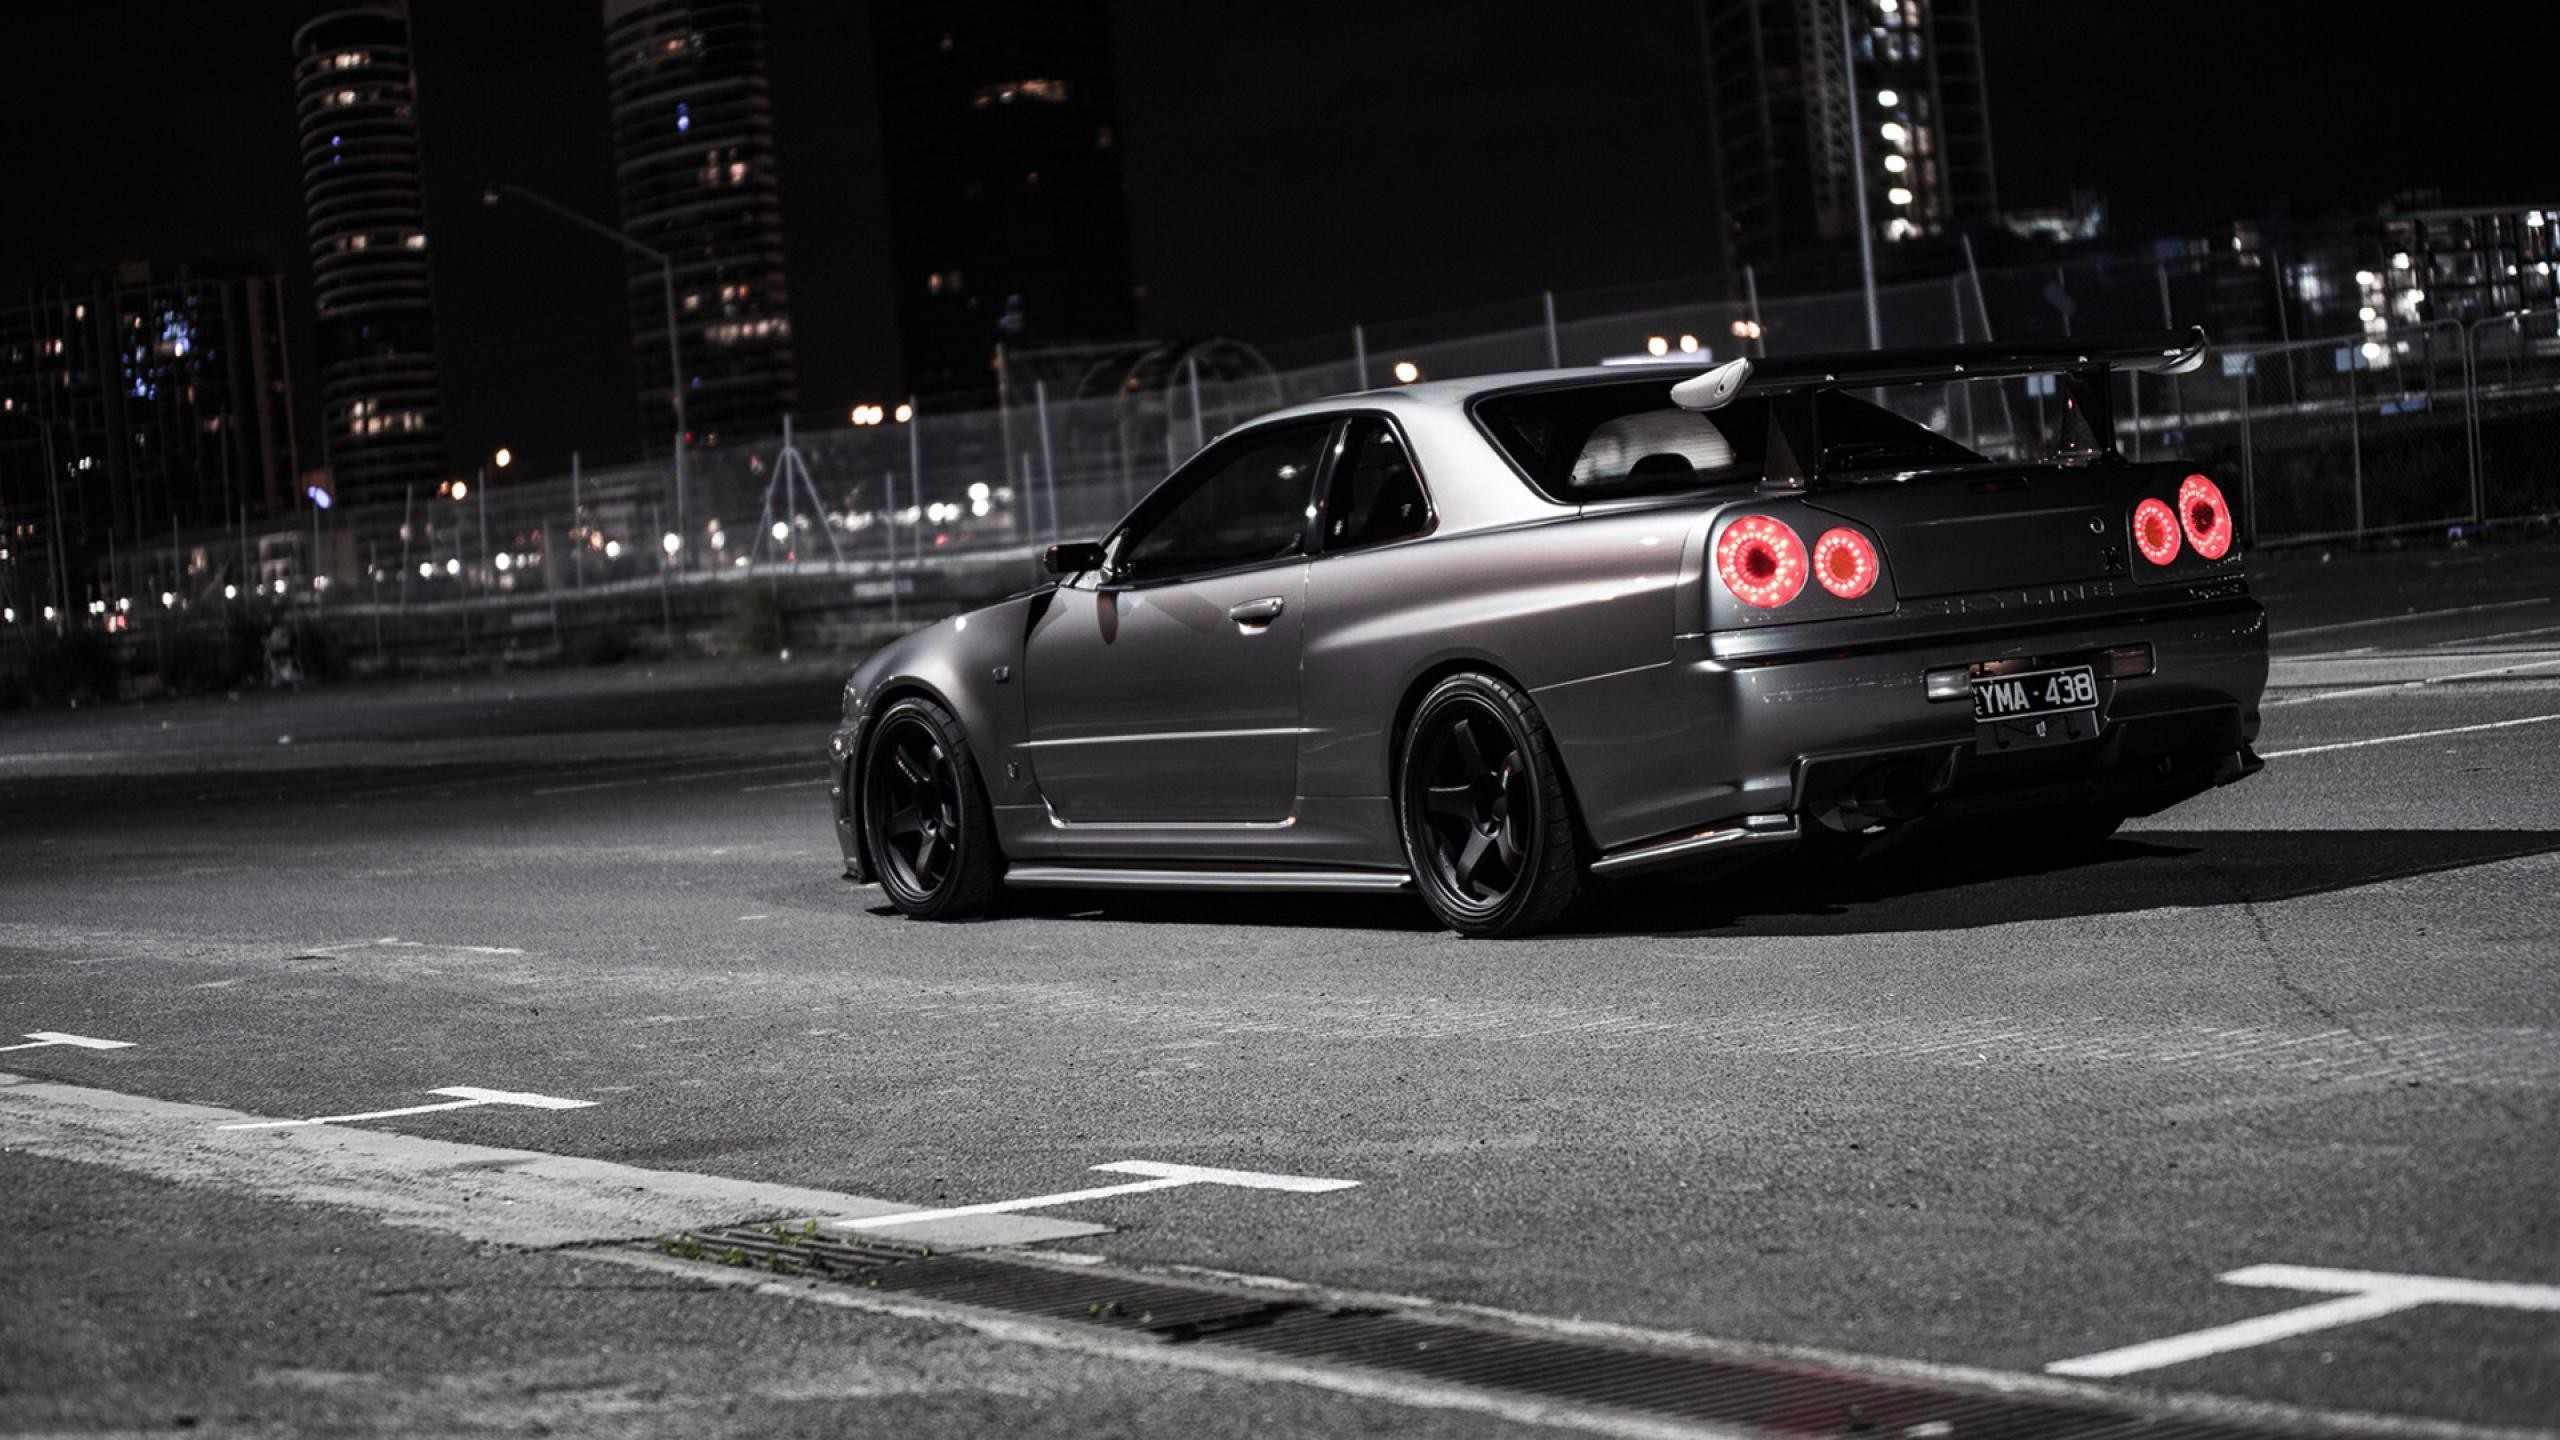 2560x1440 Like Hd Gtr Wallpaper Nissan Skyline R32 Wallpaper Nissan Skyline .